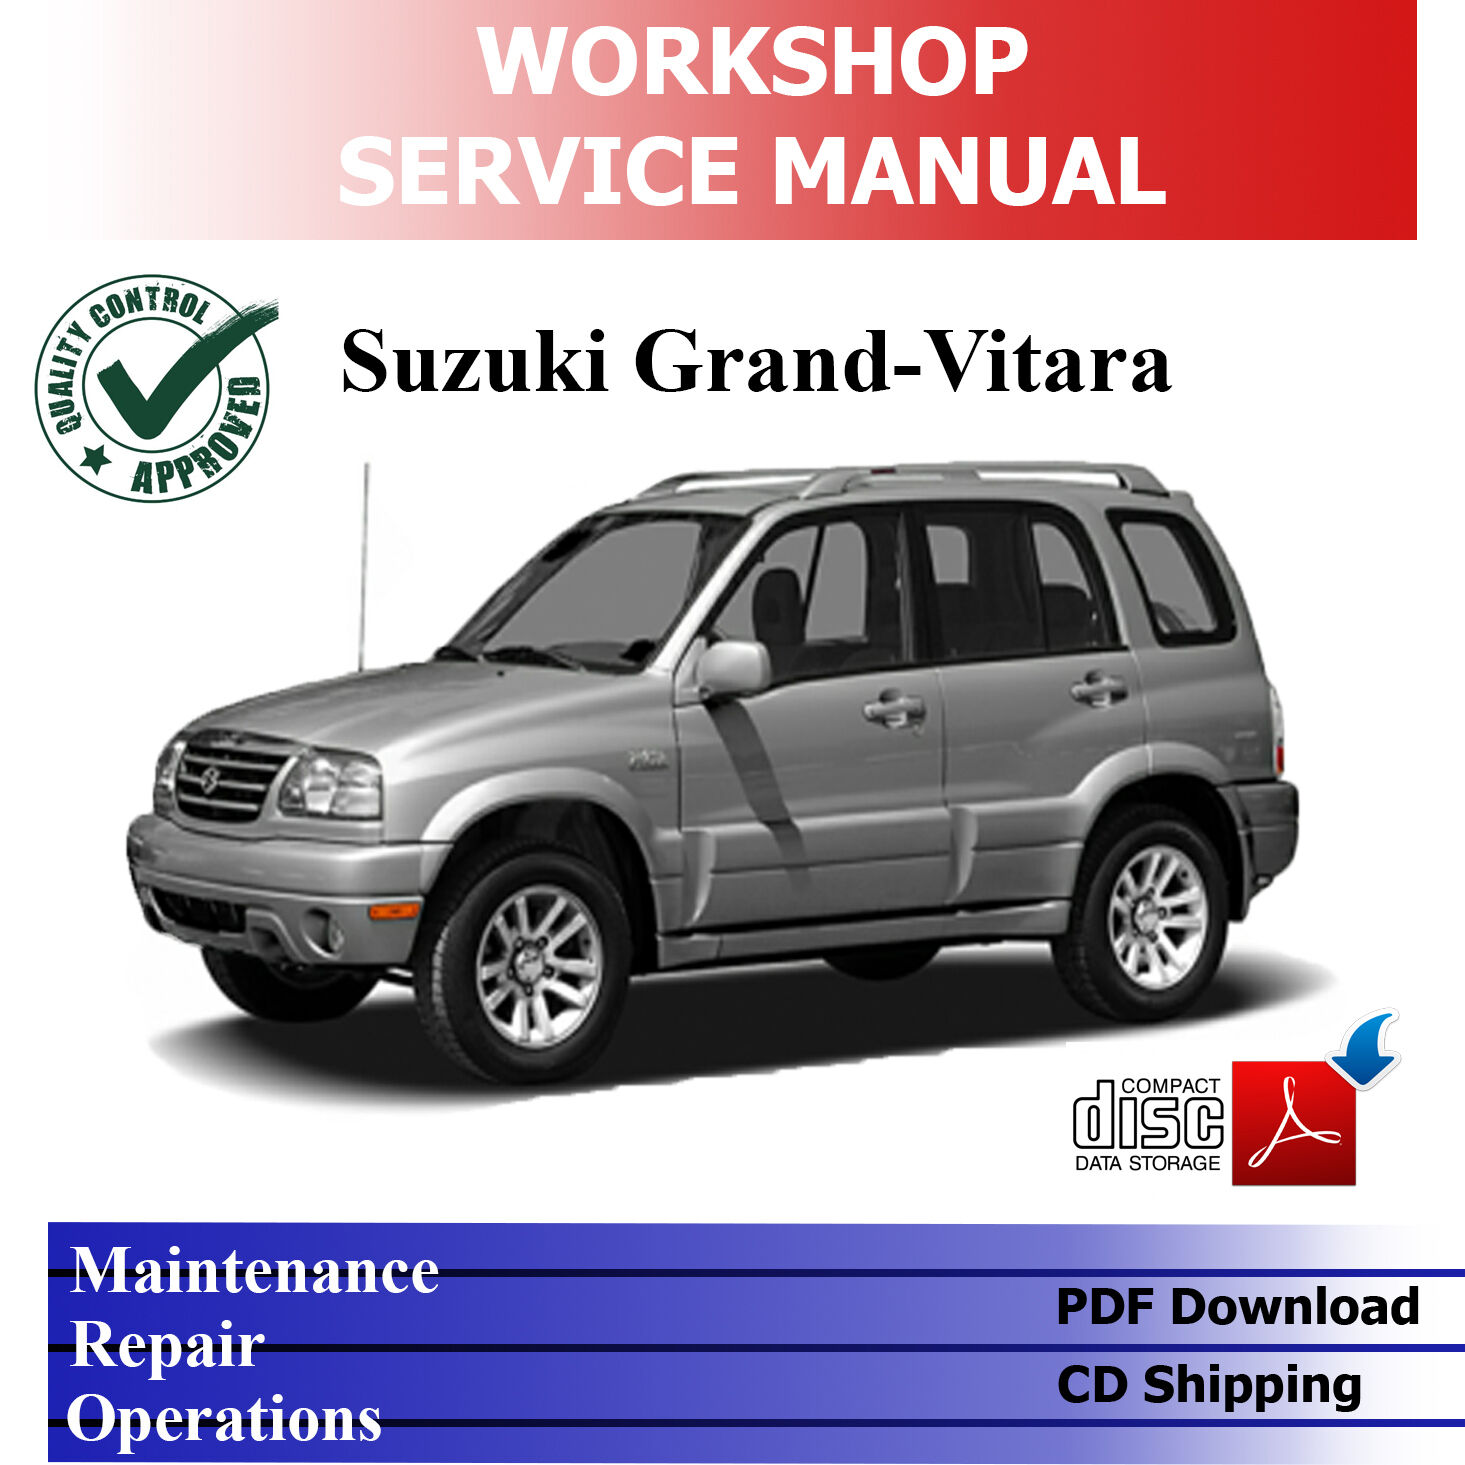 Suzuki Grand Vitara Sq Ja 98-'05 *complete* Workshop Service Manual 1 of  4FREE Shipping ...